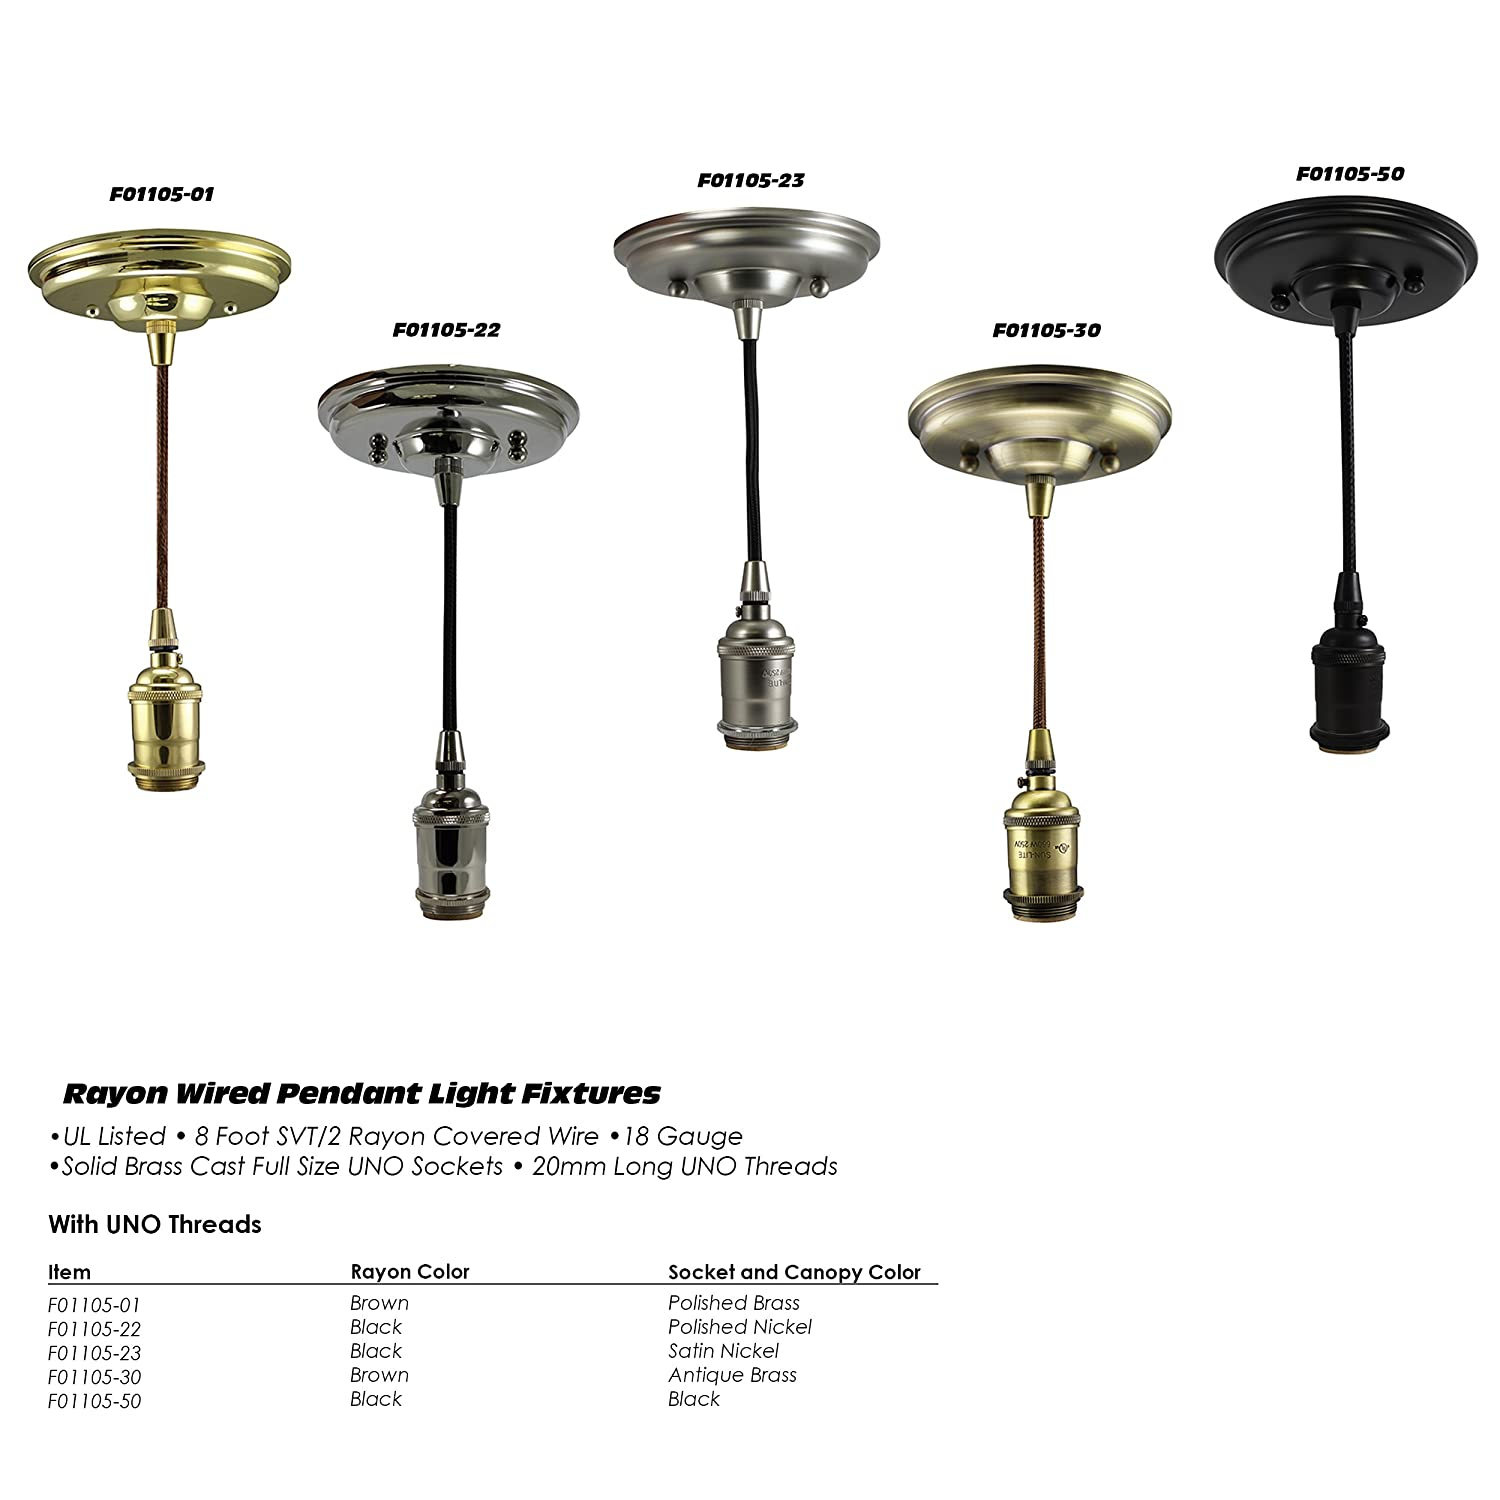 iLightingSupply F01105-01 Polished Brass Pendant Light Fixture with UNO Threads Brown Rayon Wired